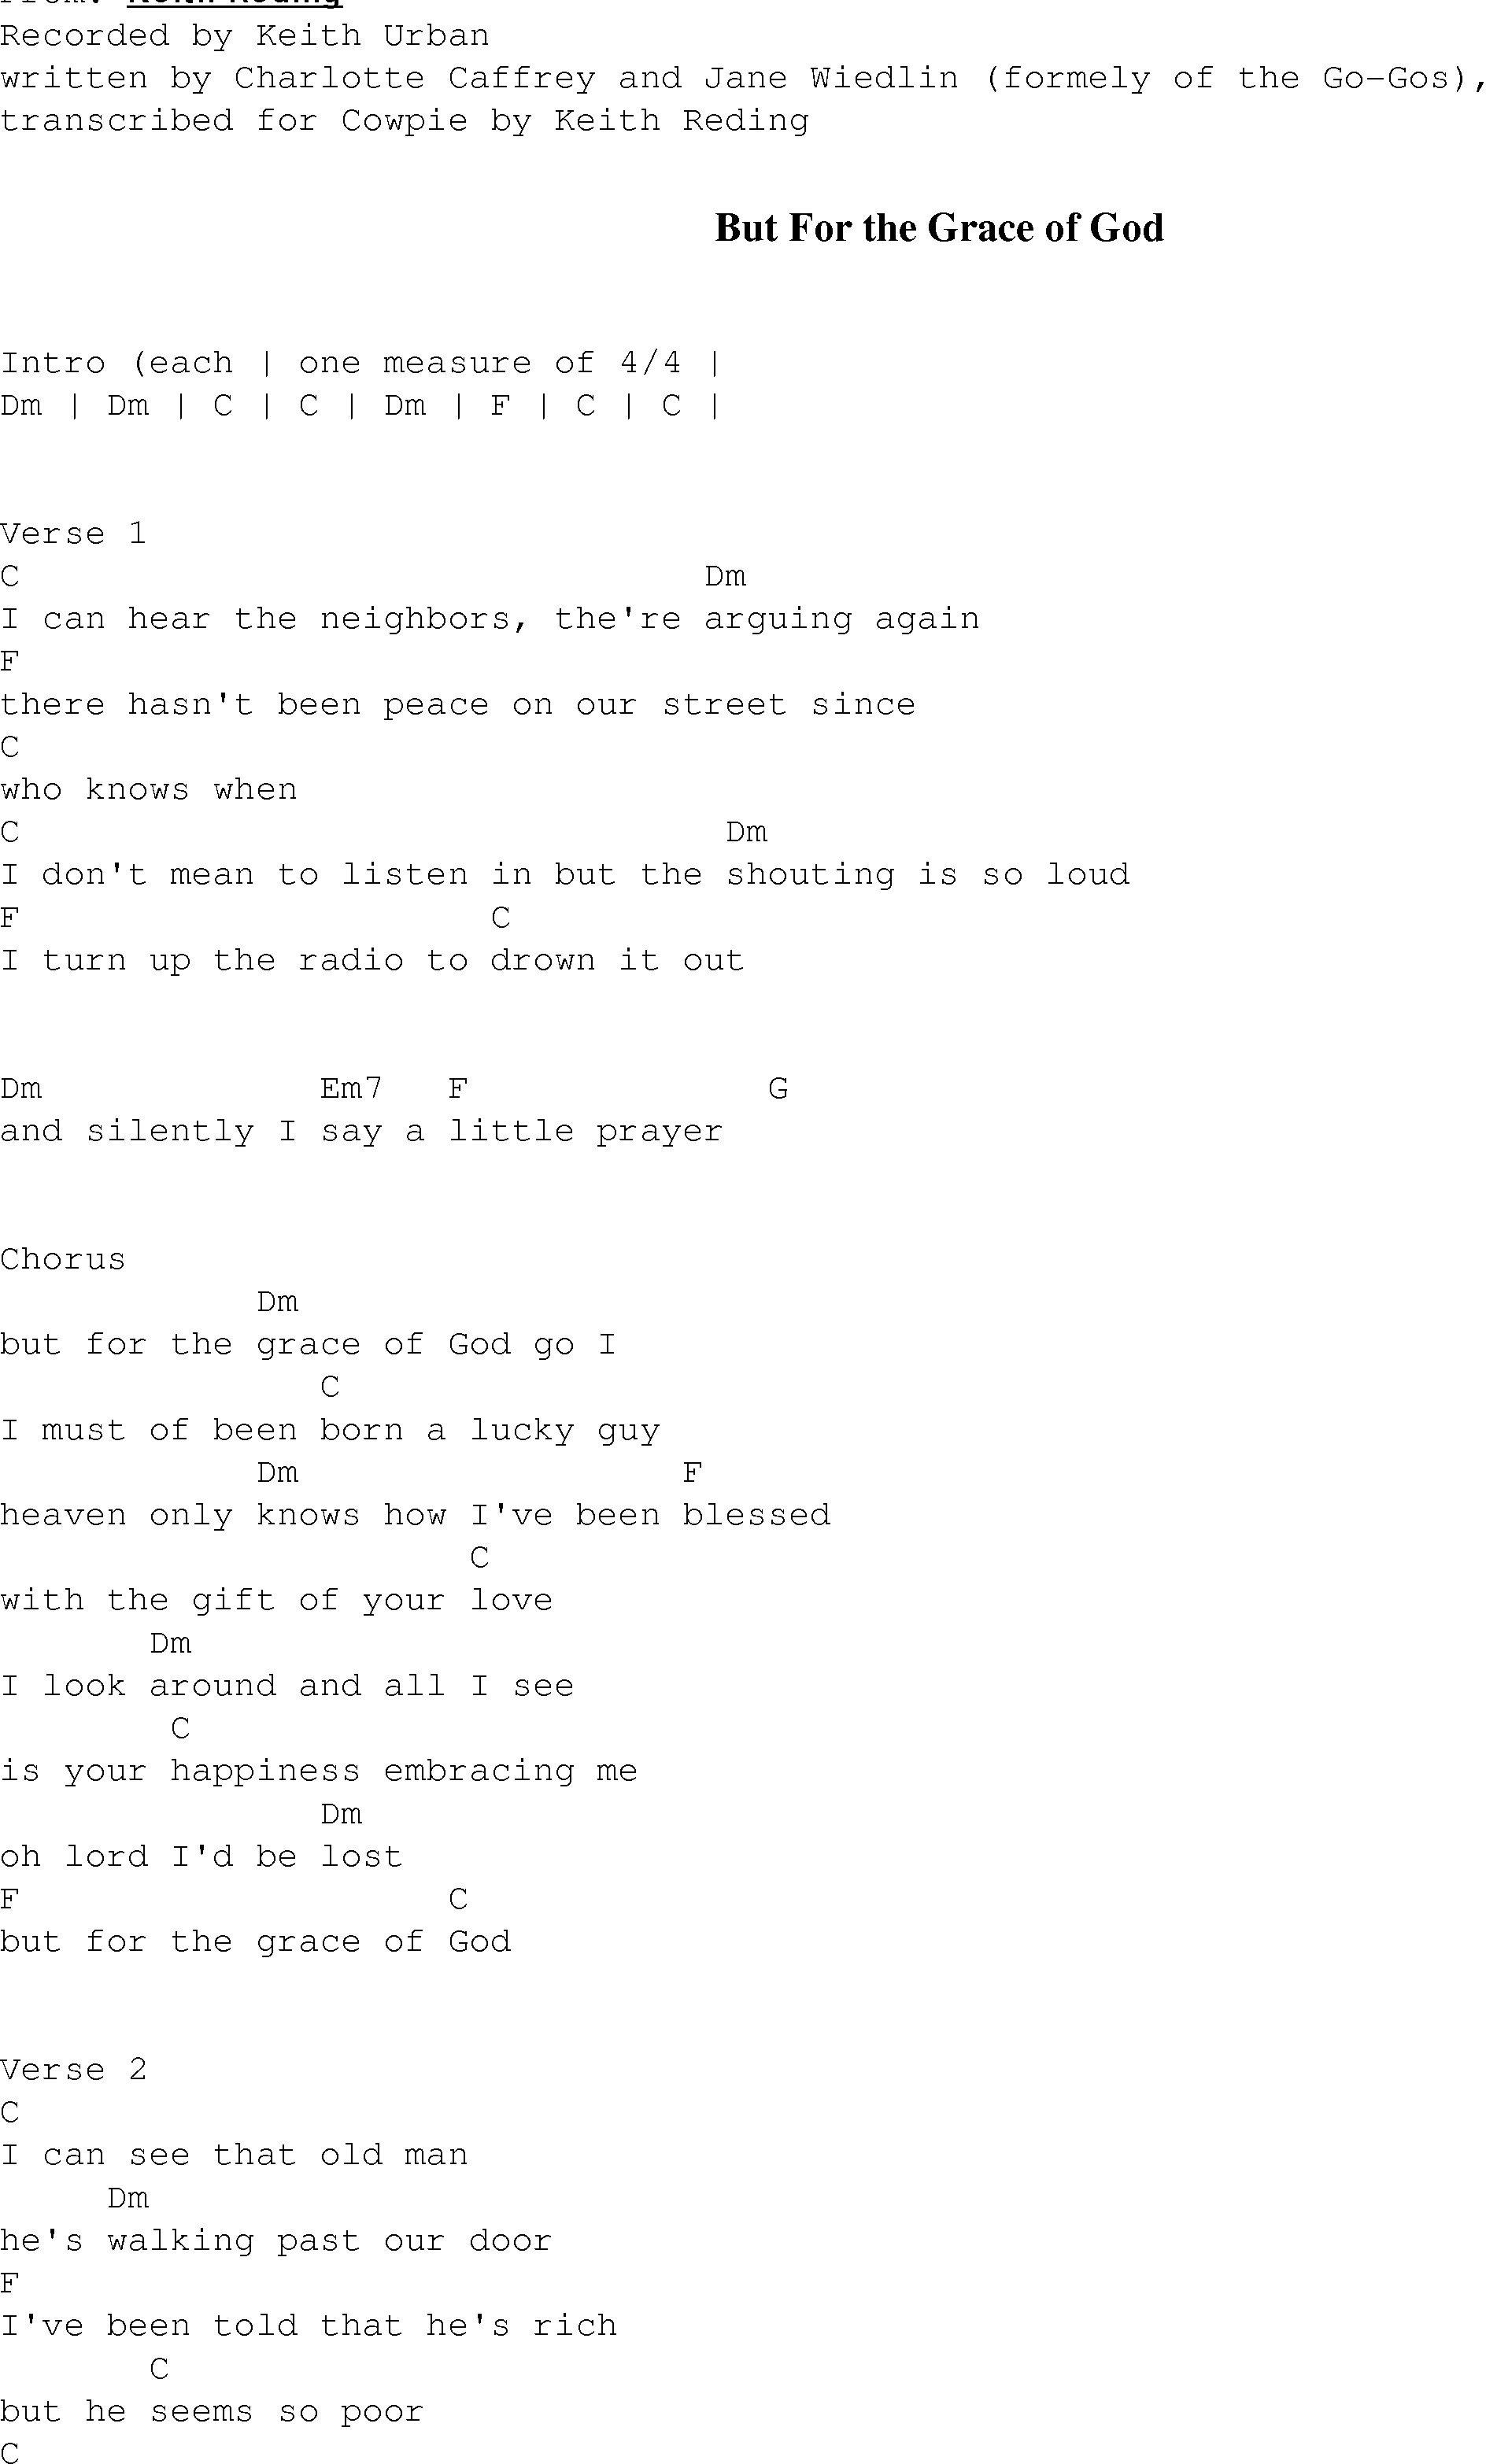 But For The Grace Of God Christian Gospel Song Lyrics And Chords